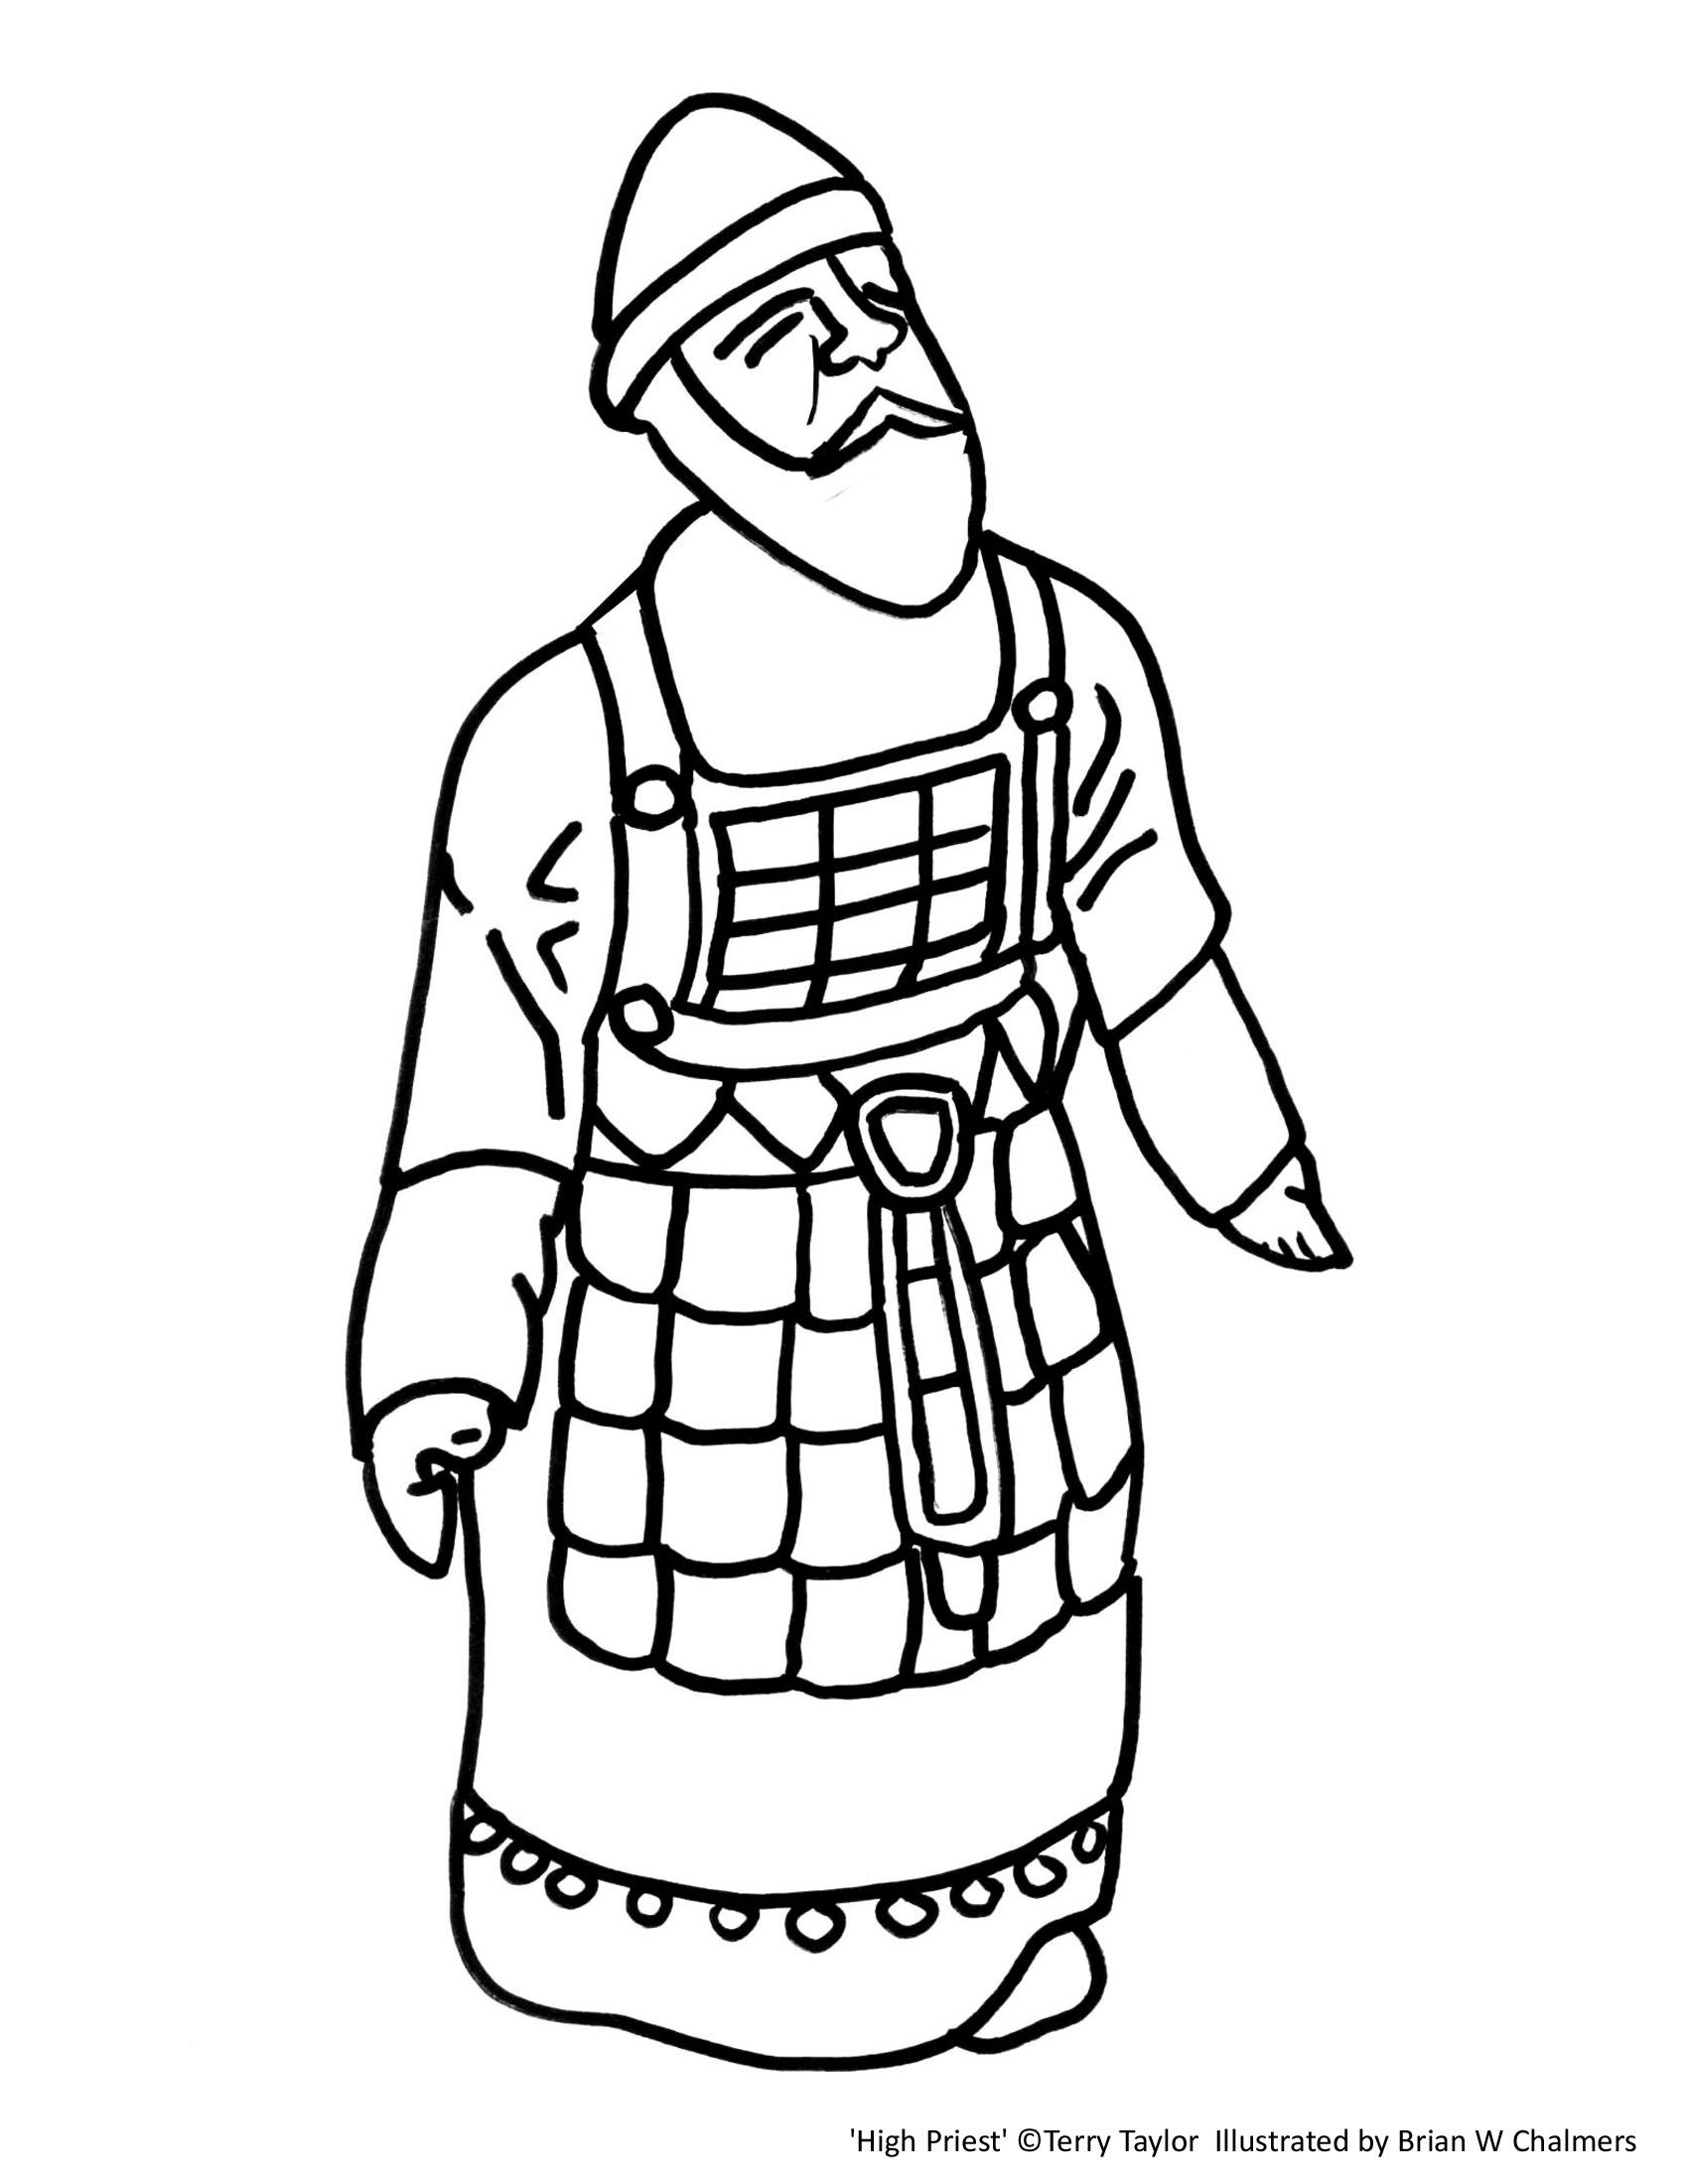 High Priest Coloring Page Coloring Pages Catholic Coloring